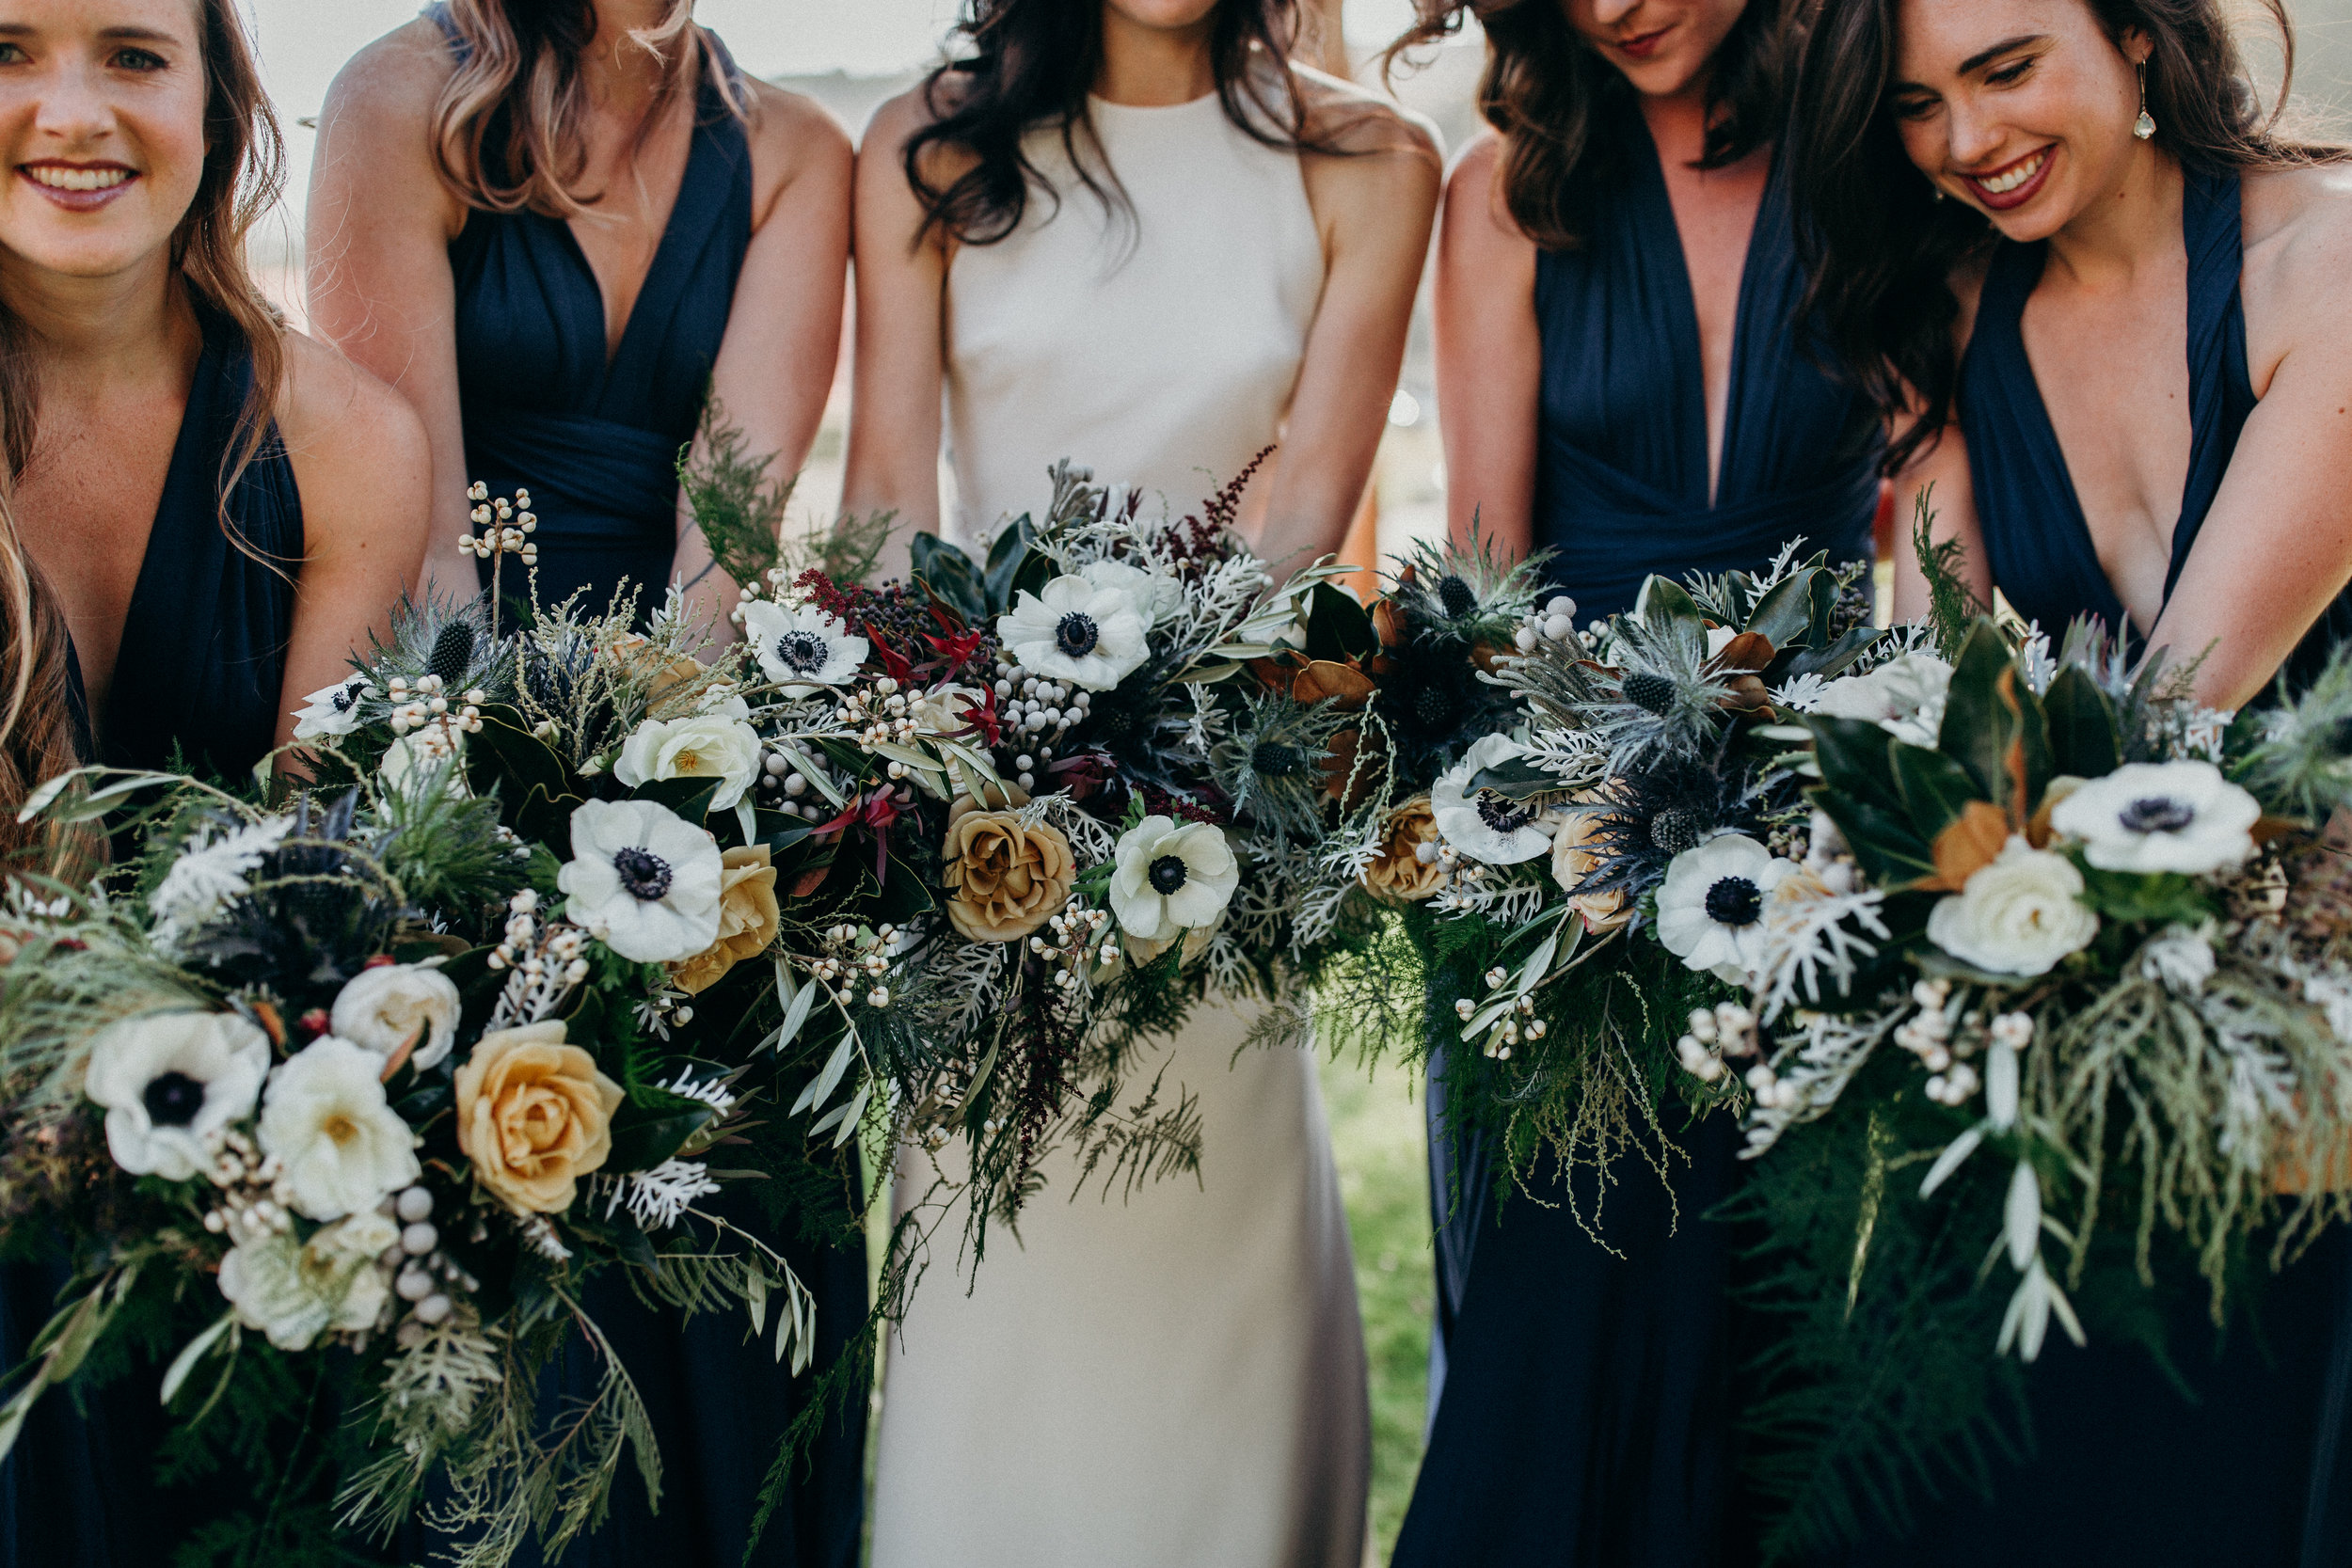 Natural bridal bouquets in white, gold, navy, and light burgundy by Venn Floral at Cavallo Point photographed by Ryan Chard Smith.